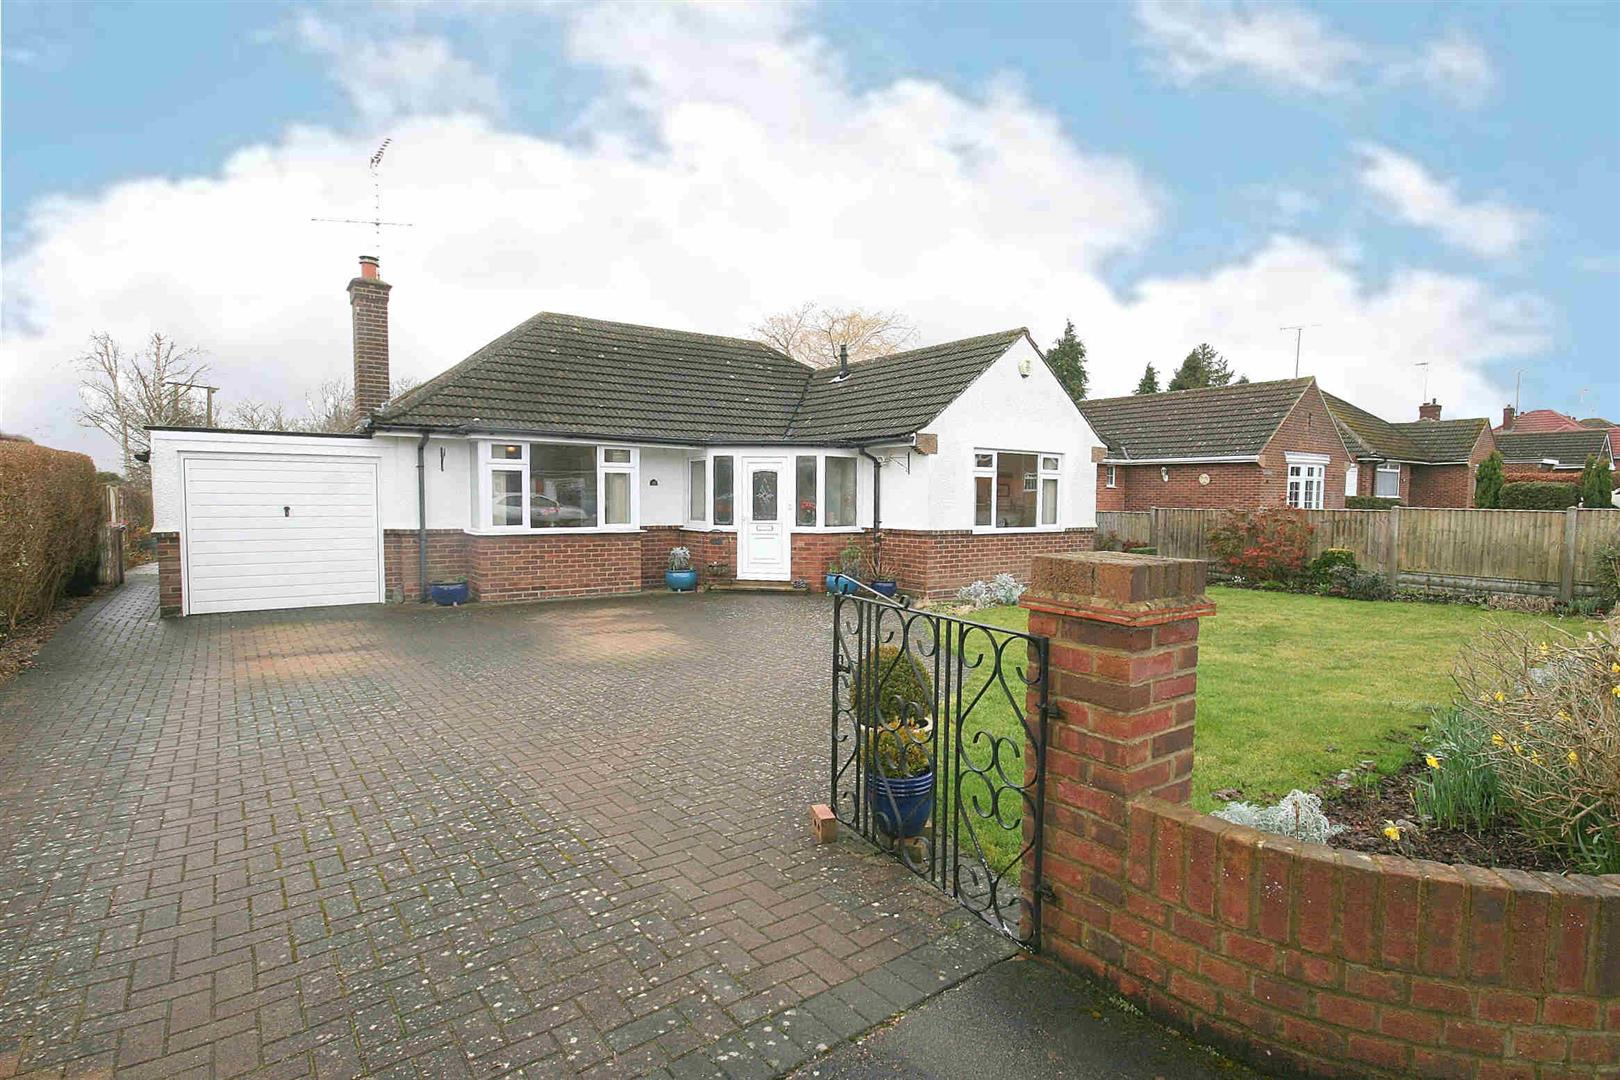 3 Bedrooms Detached Bungalow for sale in Church Lane, Eaton Bray, Beds